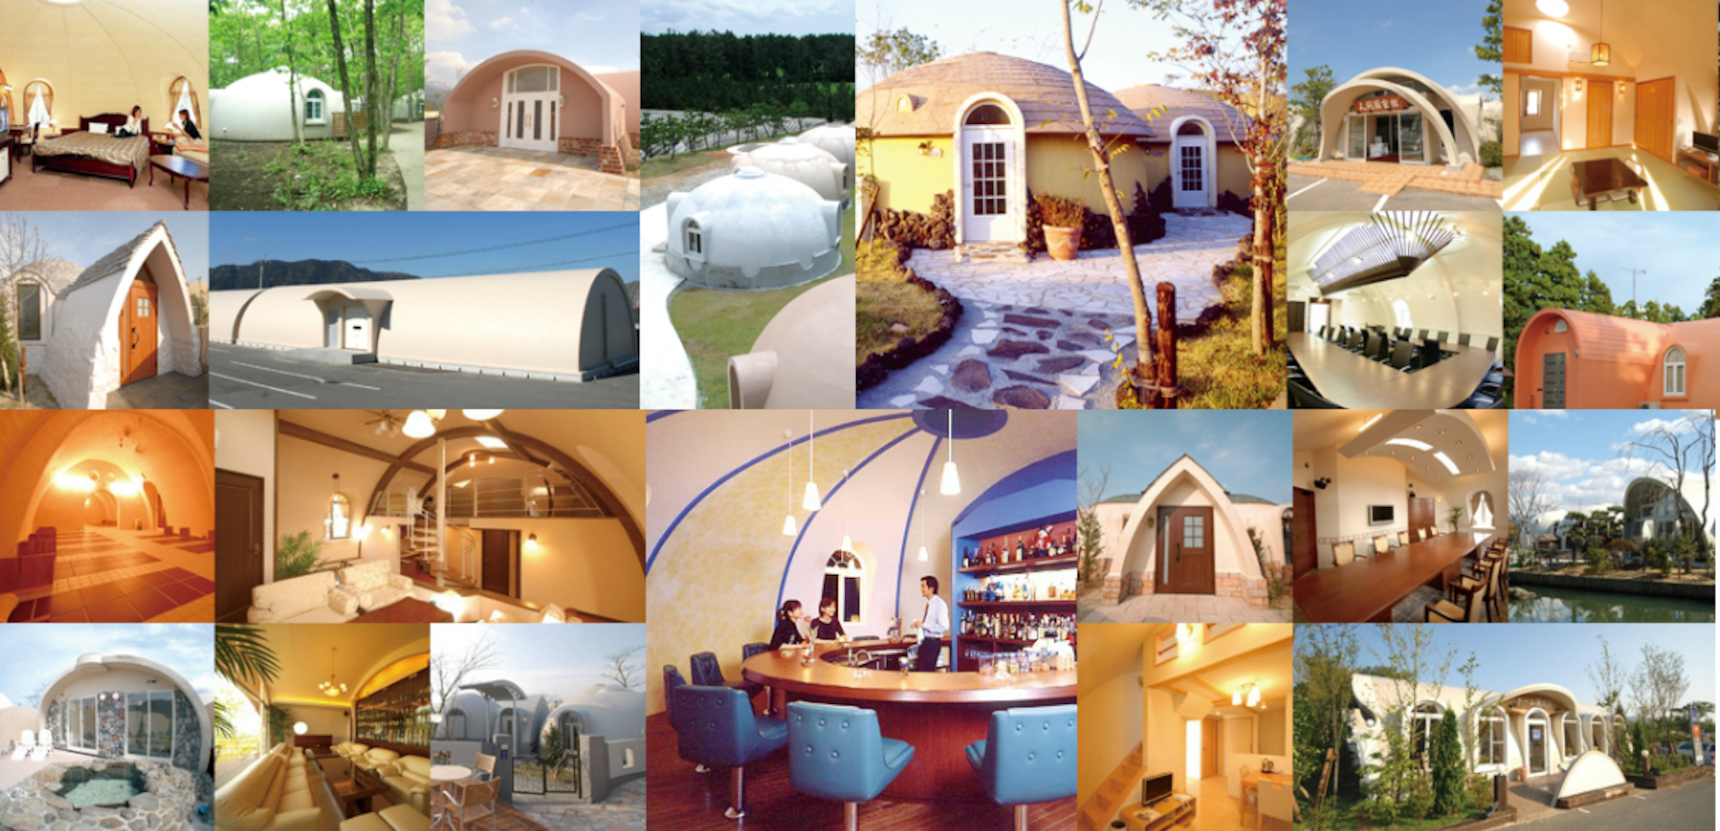 How About A Dome House All About Japan